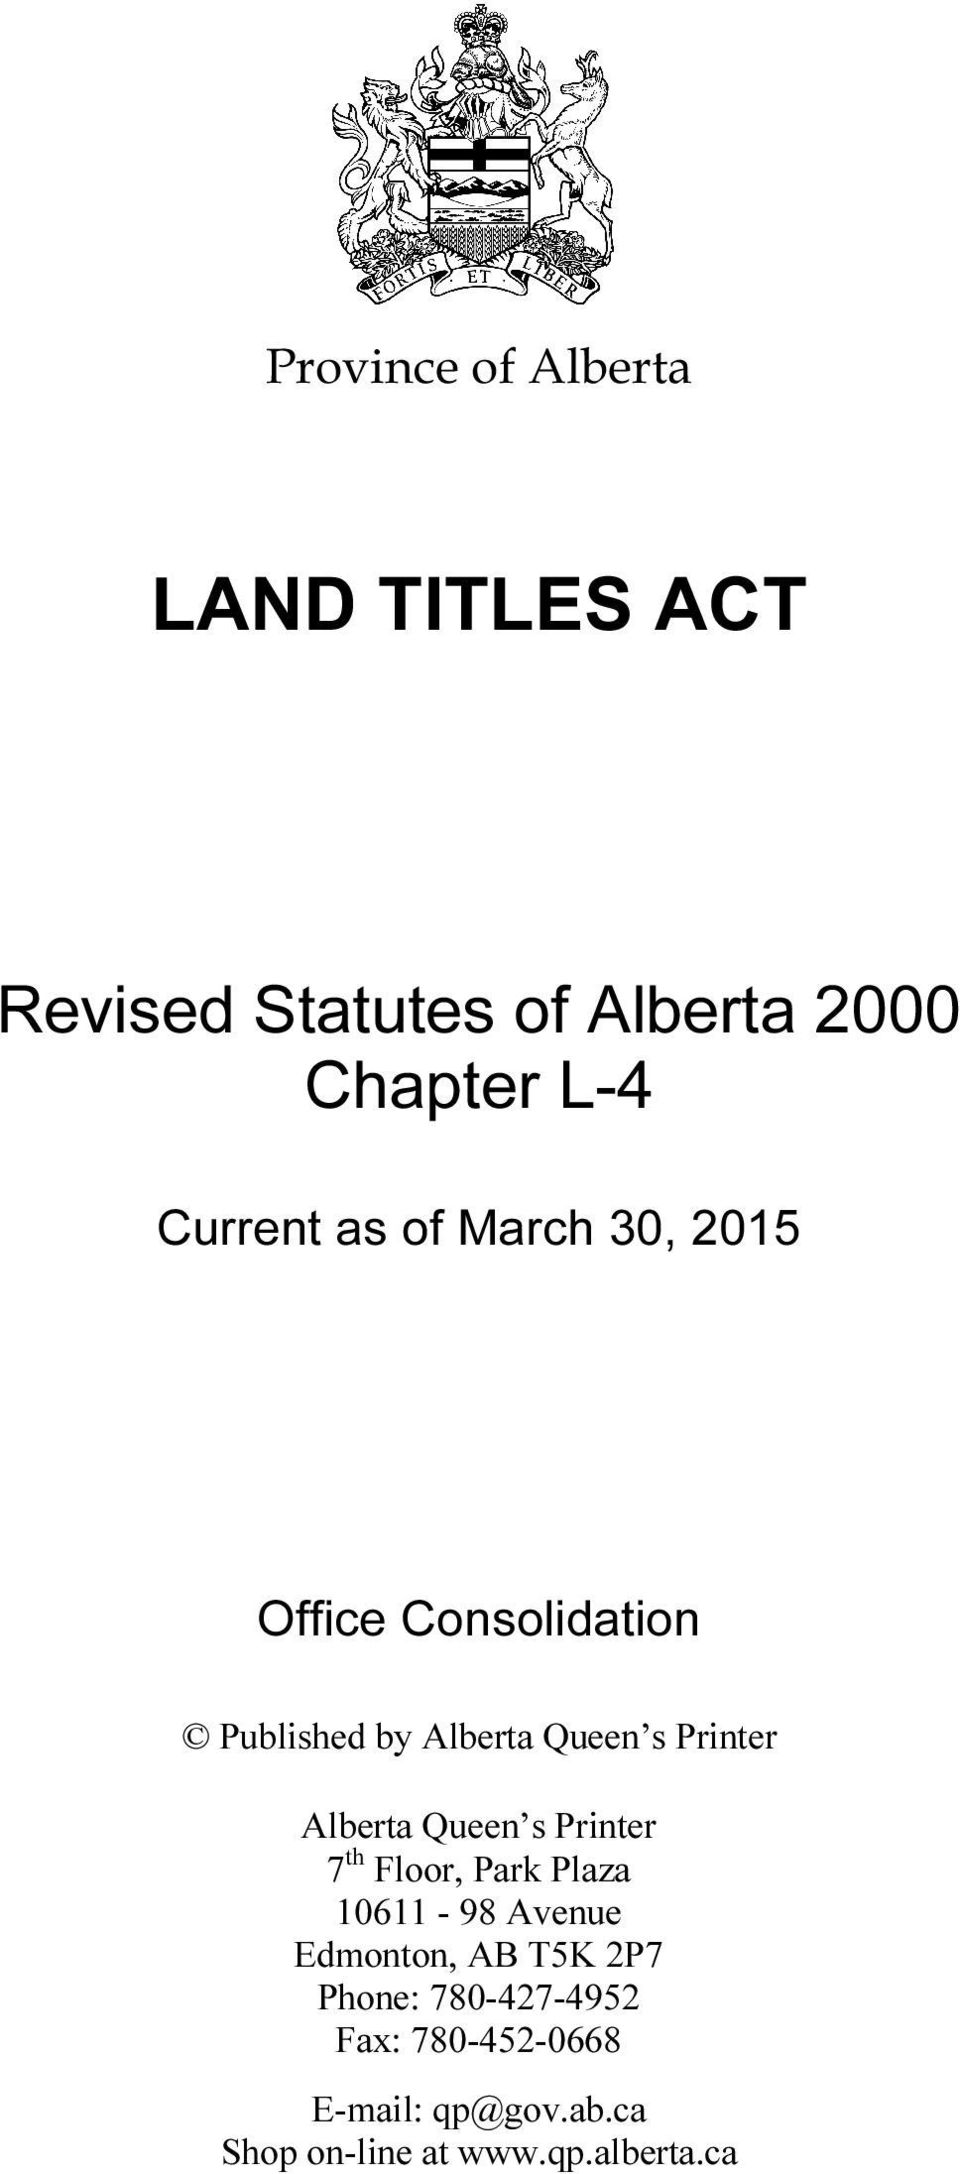 Province of Alberta LAND TITLES ACT  Revised Statutes of